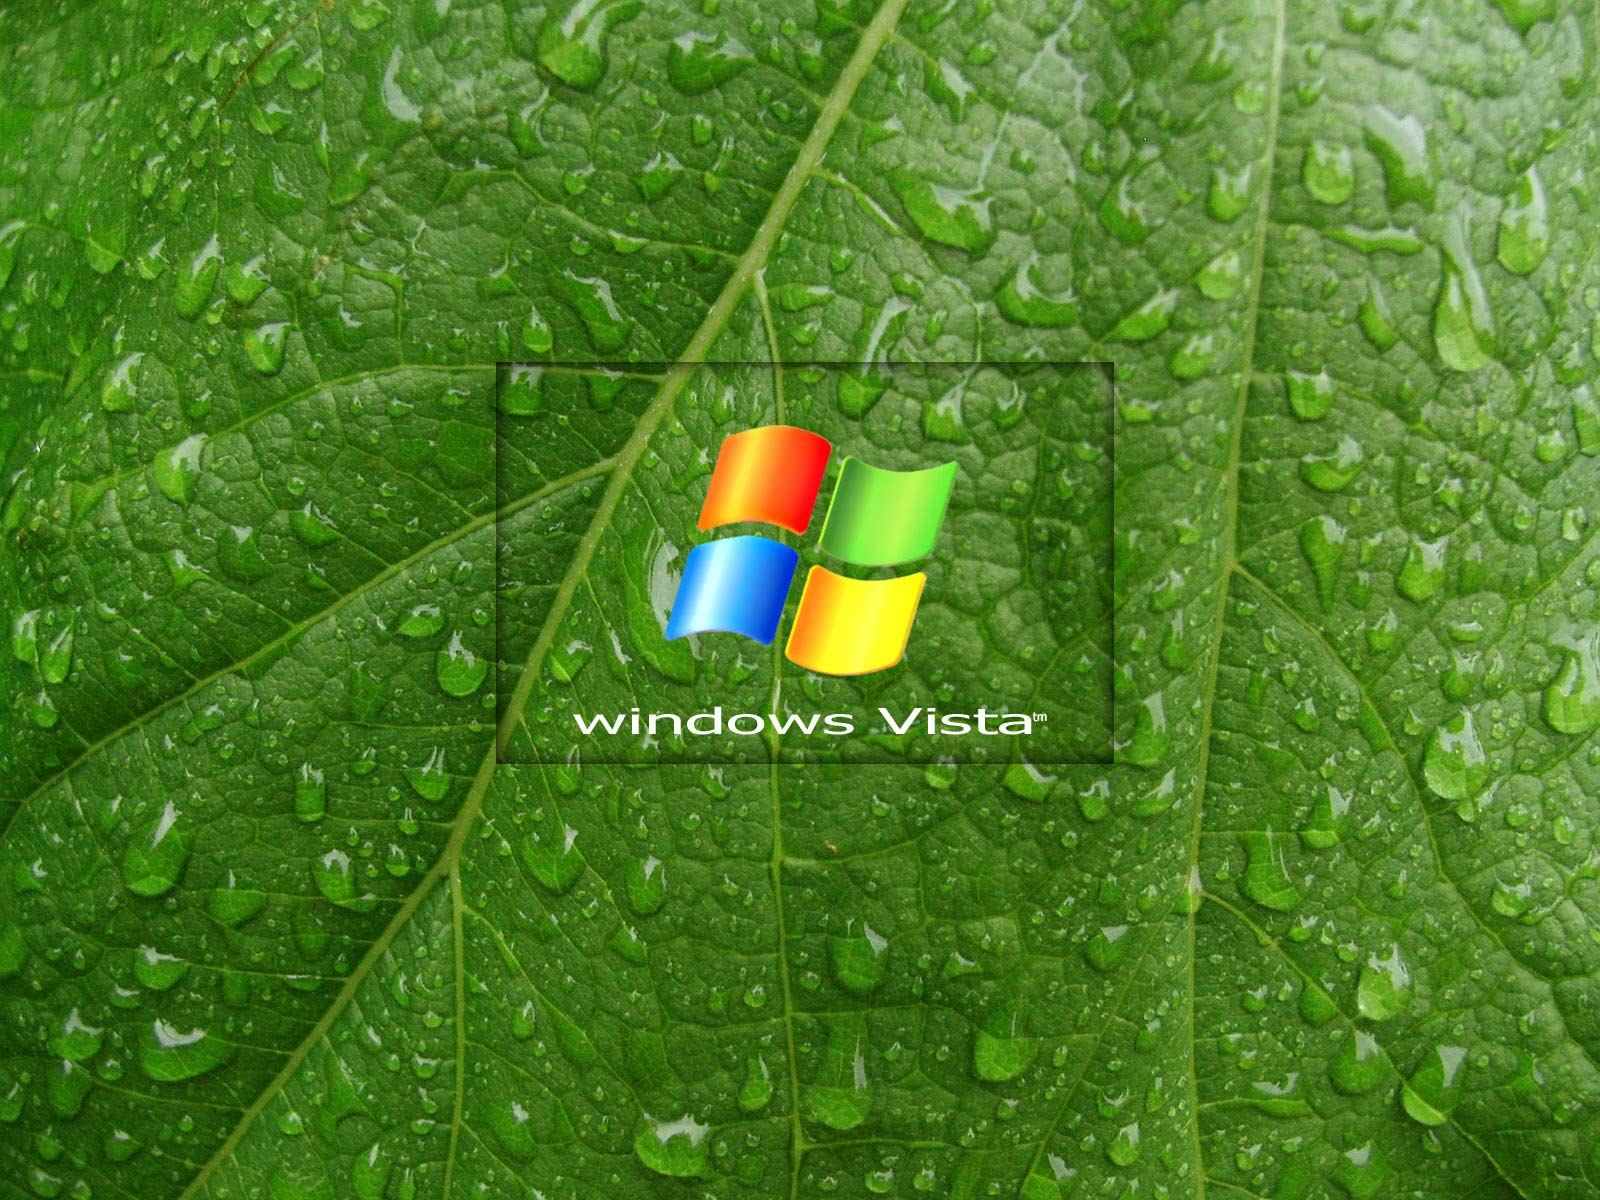 desktop wallpaper a· gallery a· computers a· windows vista free